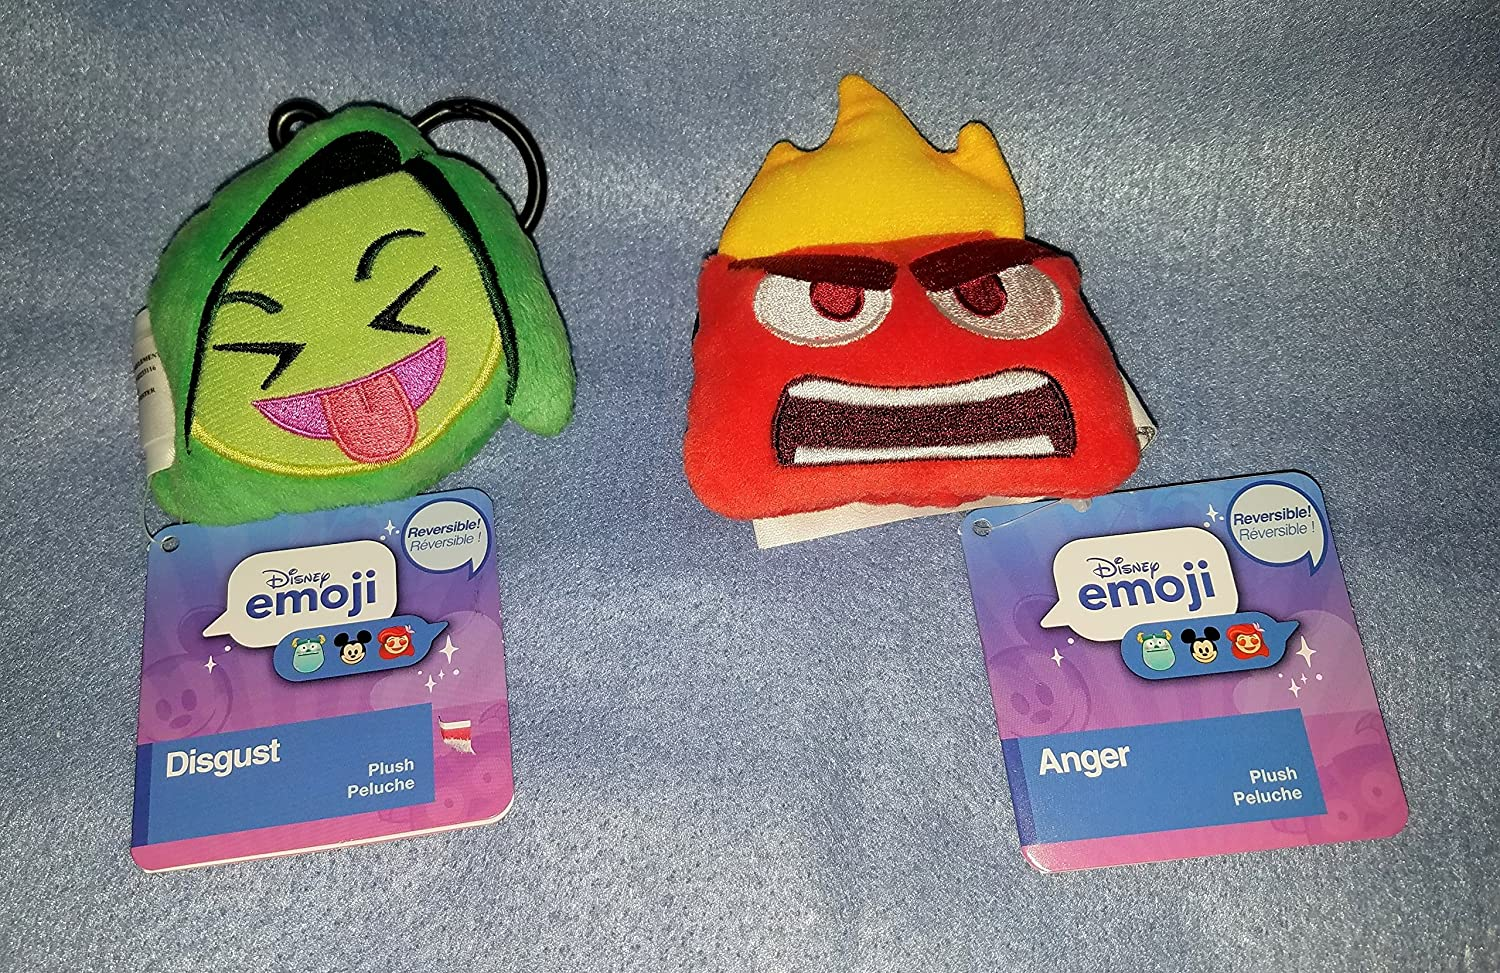 Amazon.com: Global Horizons Disney Inside Out Reversible Plush Emoji Backpack/Purse Clip Set: Anger - Disgust: Toys & Games